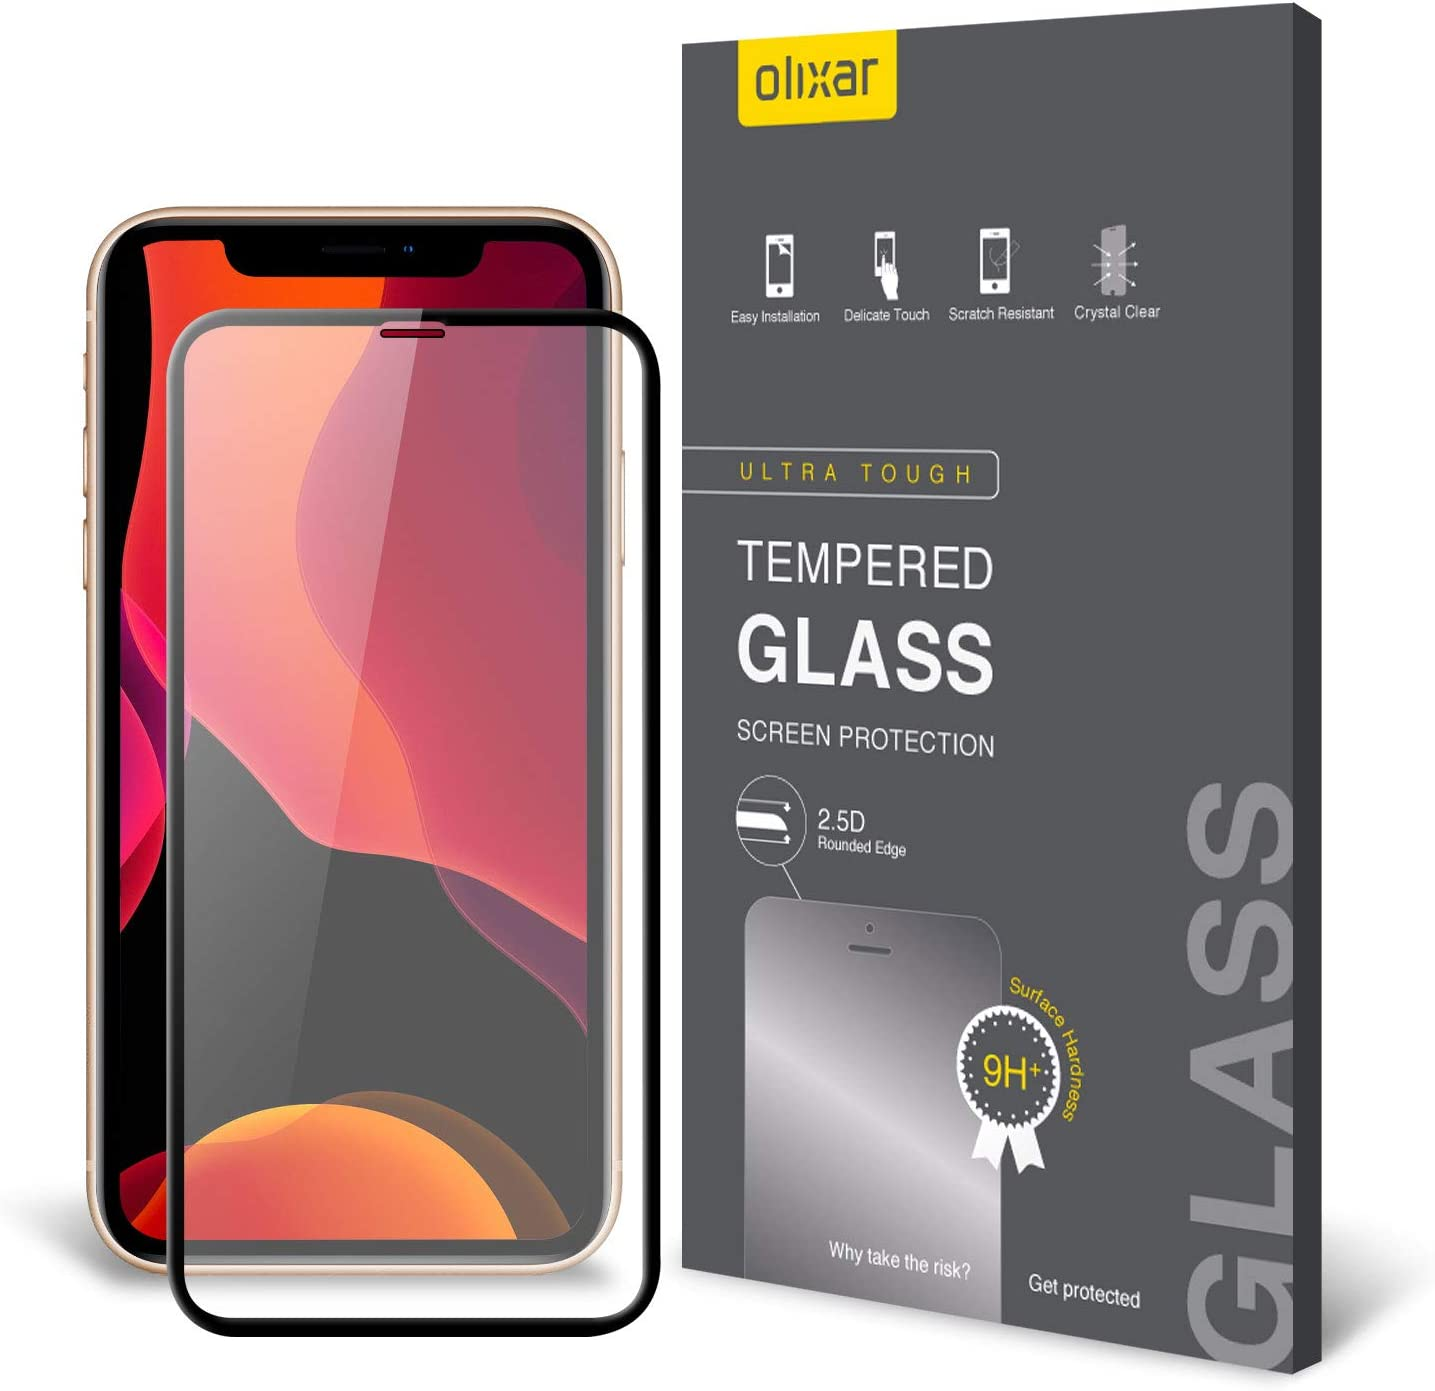 Olixar Screen Protector for Apple iPhone 11 Pro, Tempered Glass - Shock Proof, Anti-Scratch, Anti-Shatter, Bubble Free, Clear HD Clarity Full Coverage Case Friendly - Easy Application